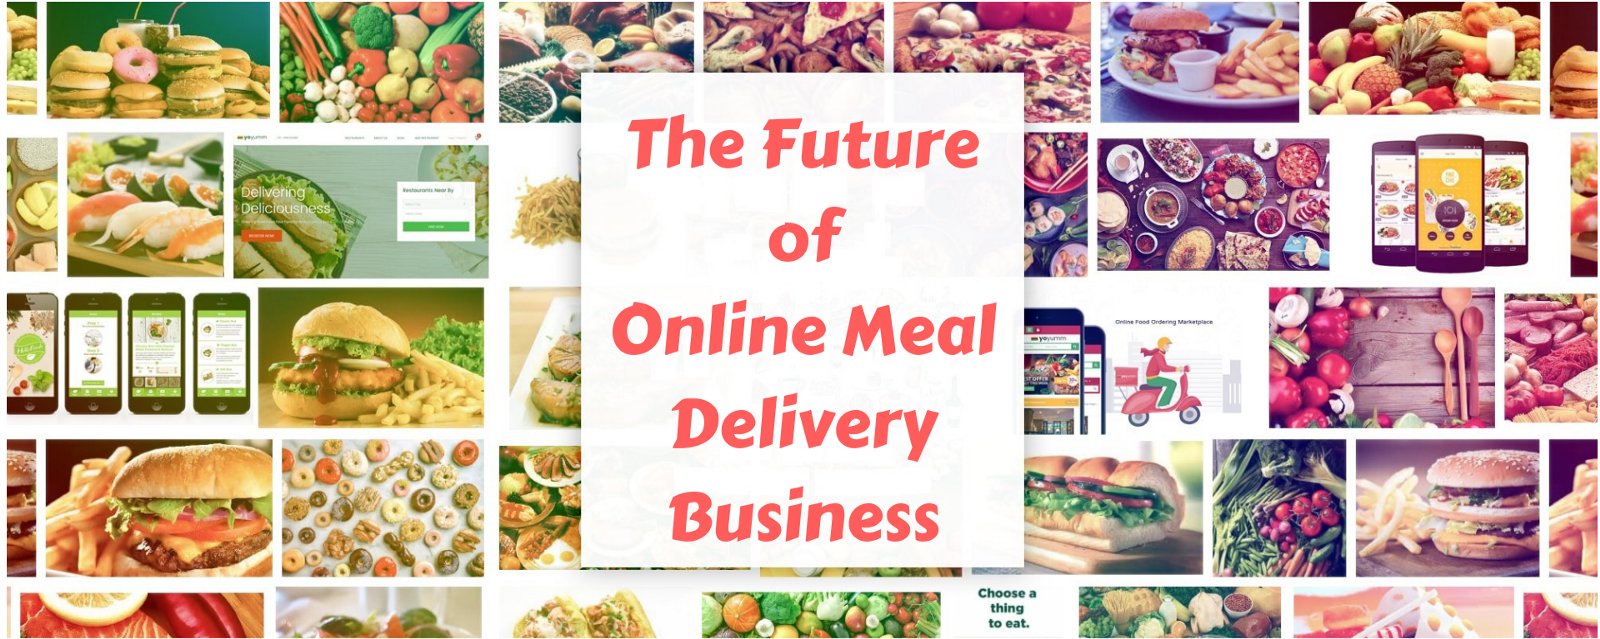 the future of online food ordering and delivery business